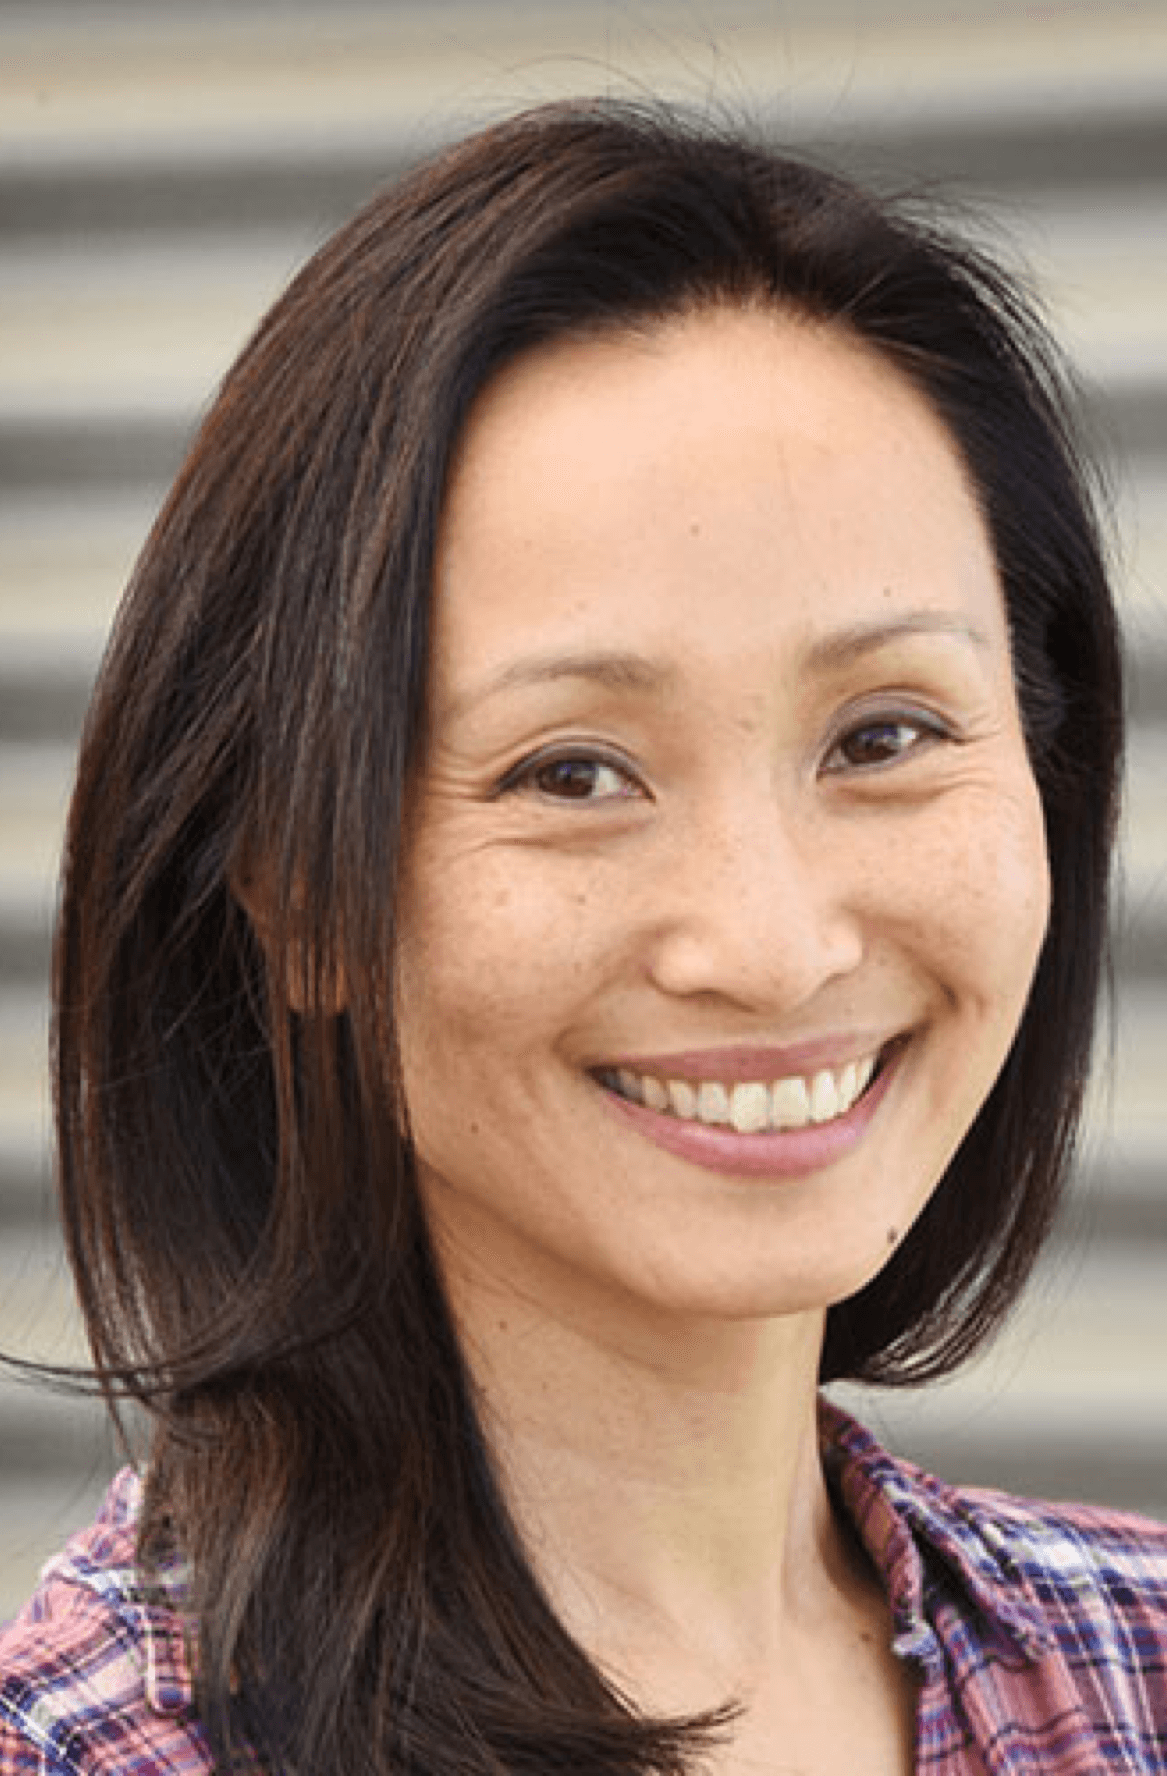 Headshot of Diana Ngo, Director of Finance at YourMechanic